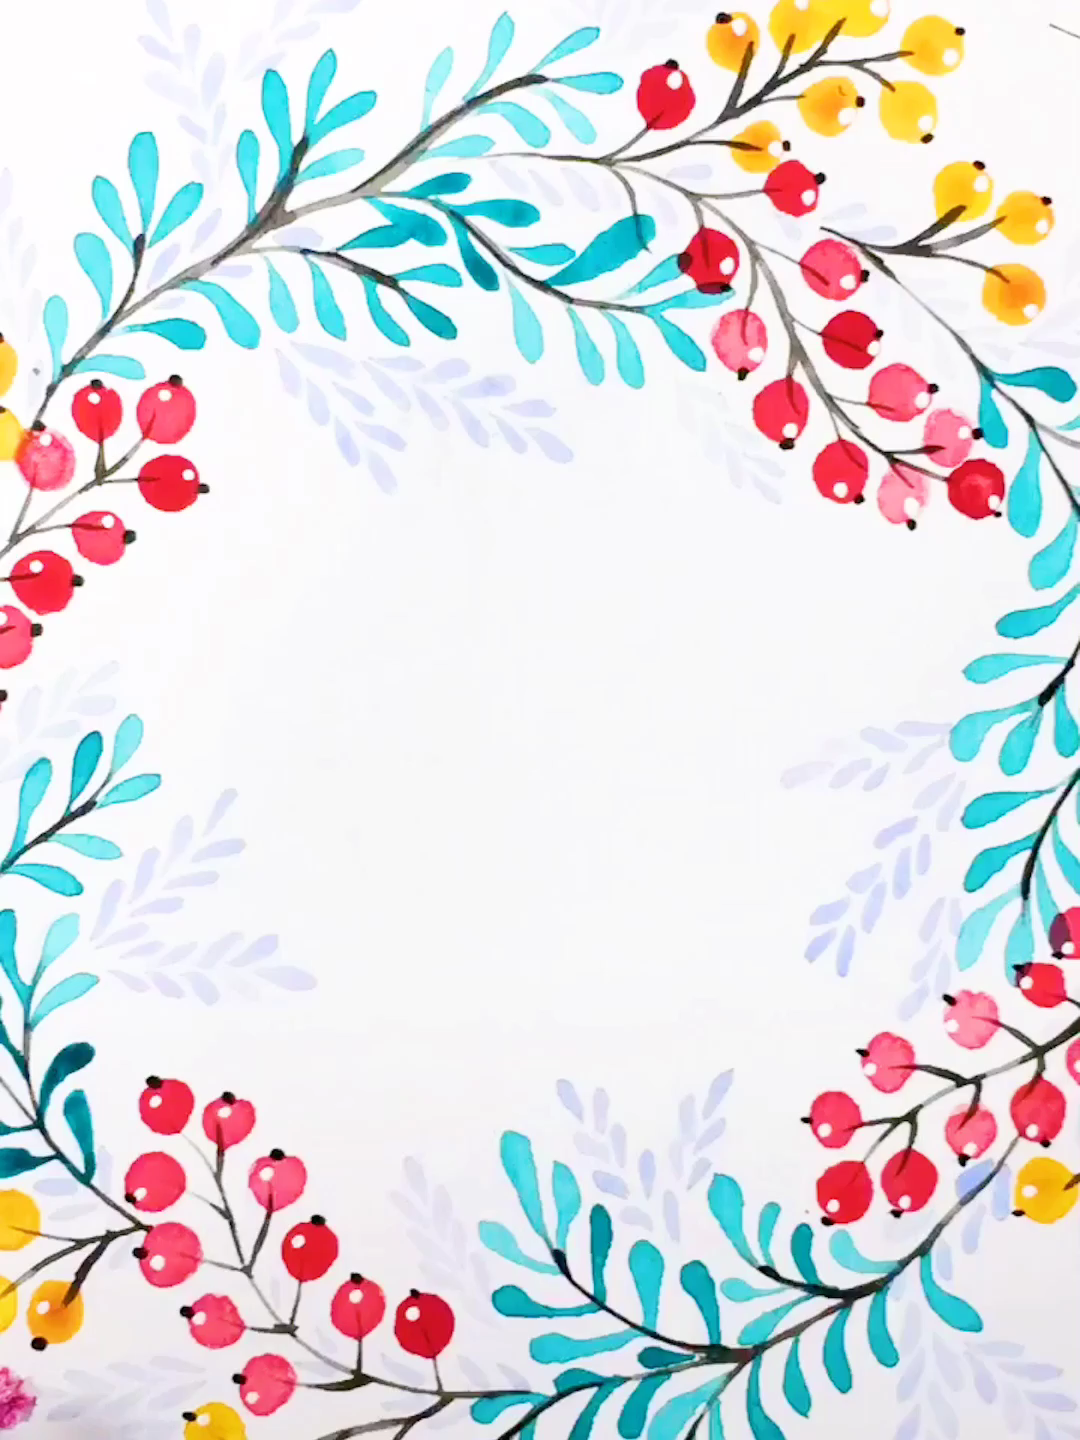 Vintage Watercolor Wreath